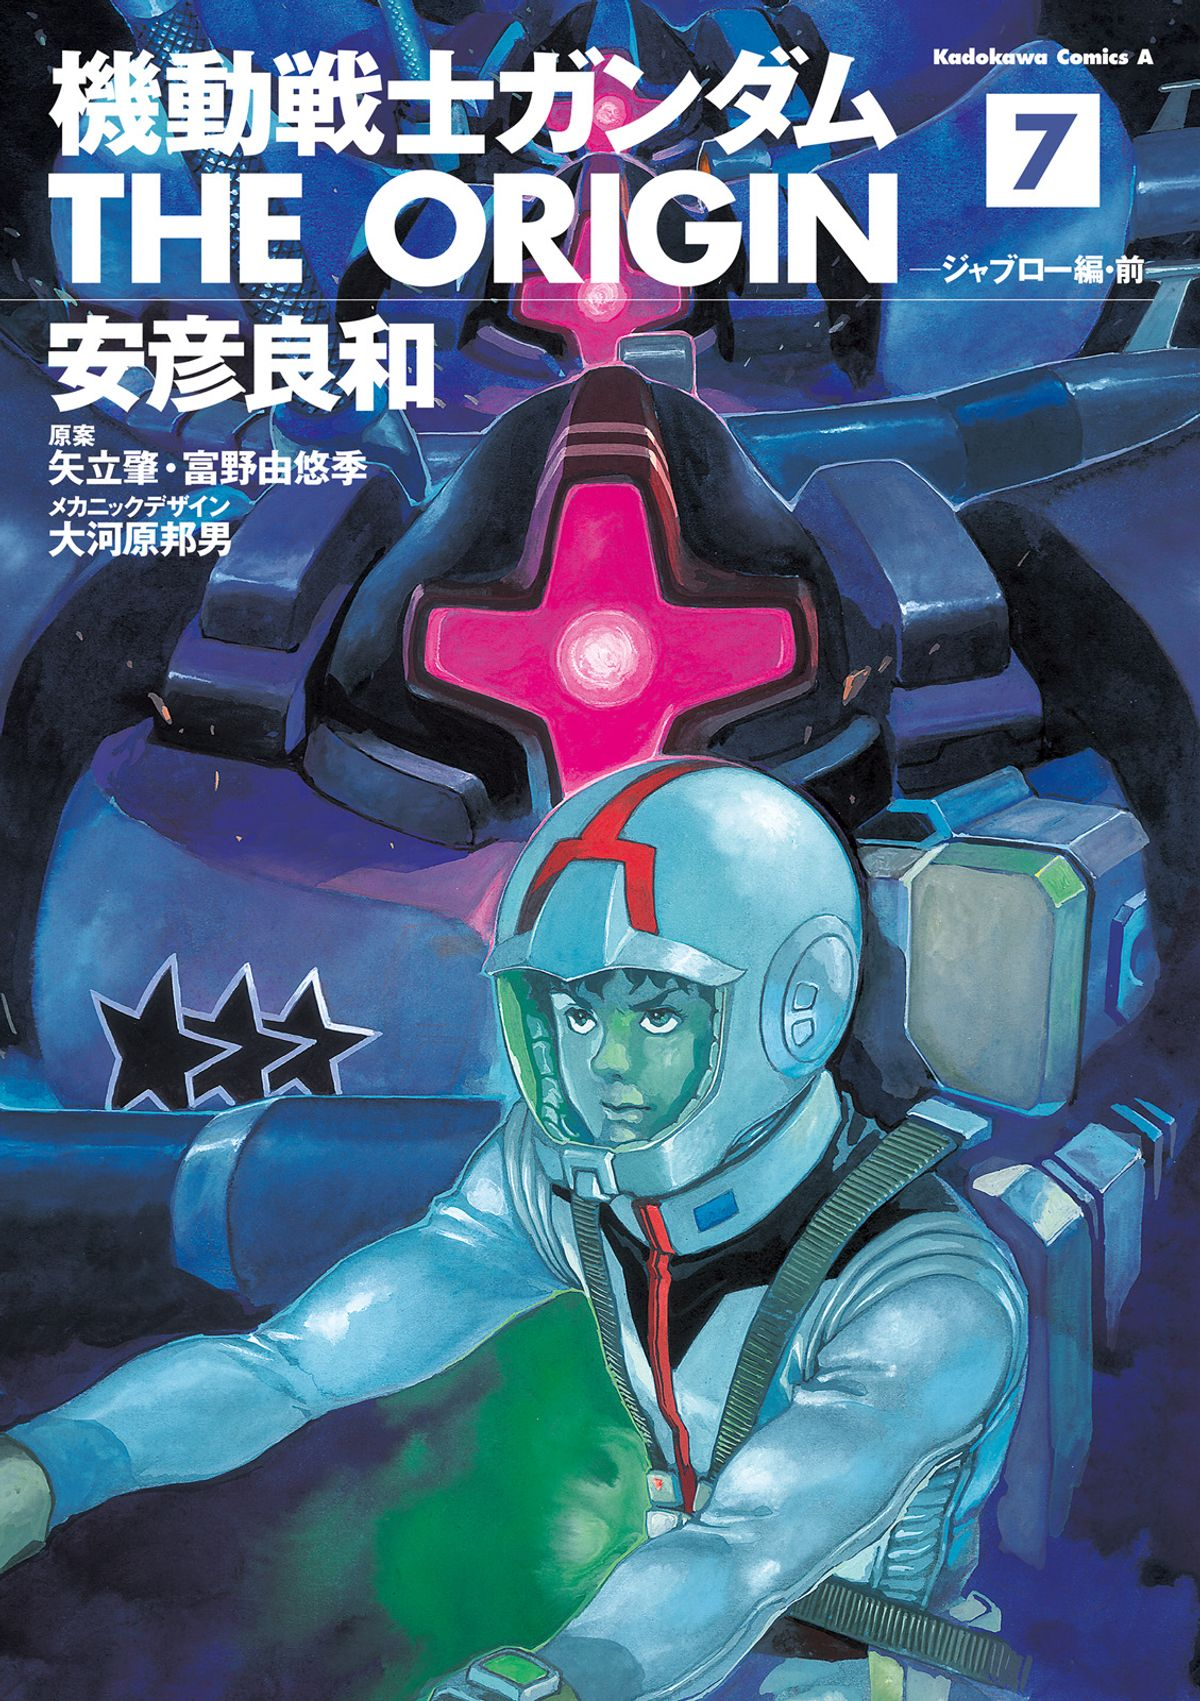 File:Mobile-suit-gundam-the-origin-7.jpg